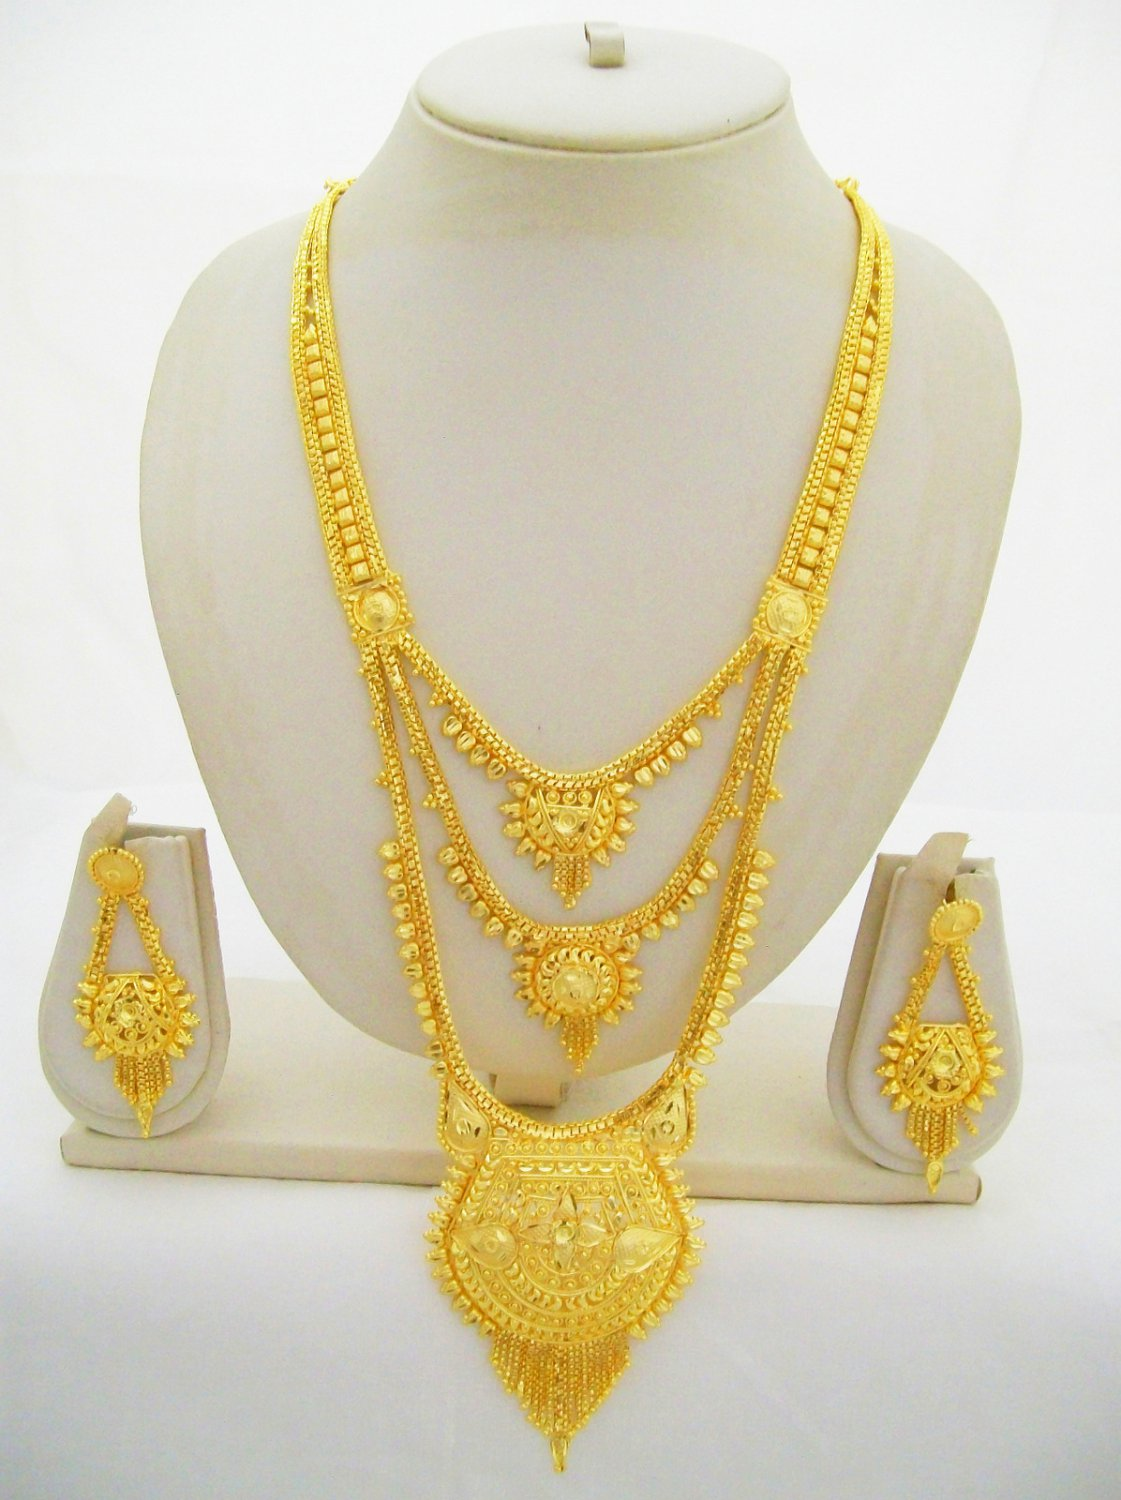 3 Layered Gold Plated Rani Haar Indian Asian Wedding Bridal Ethnic Jewellery Set